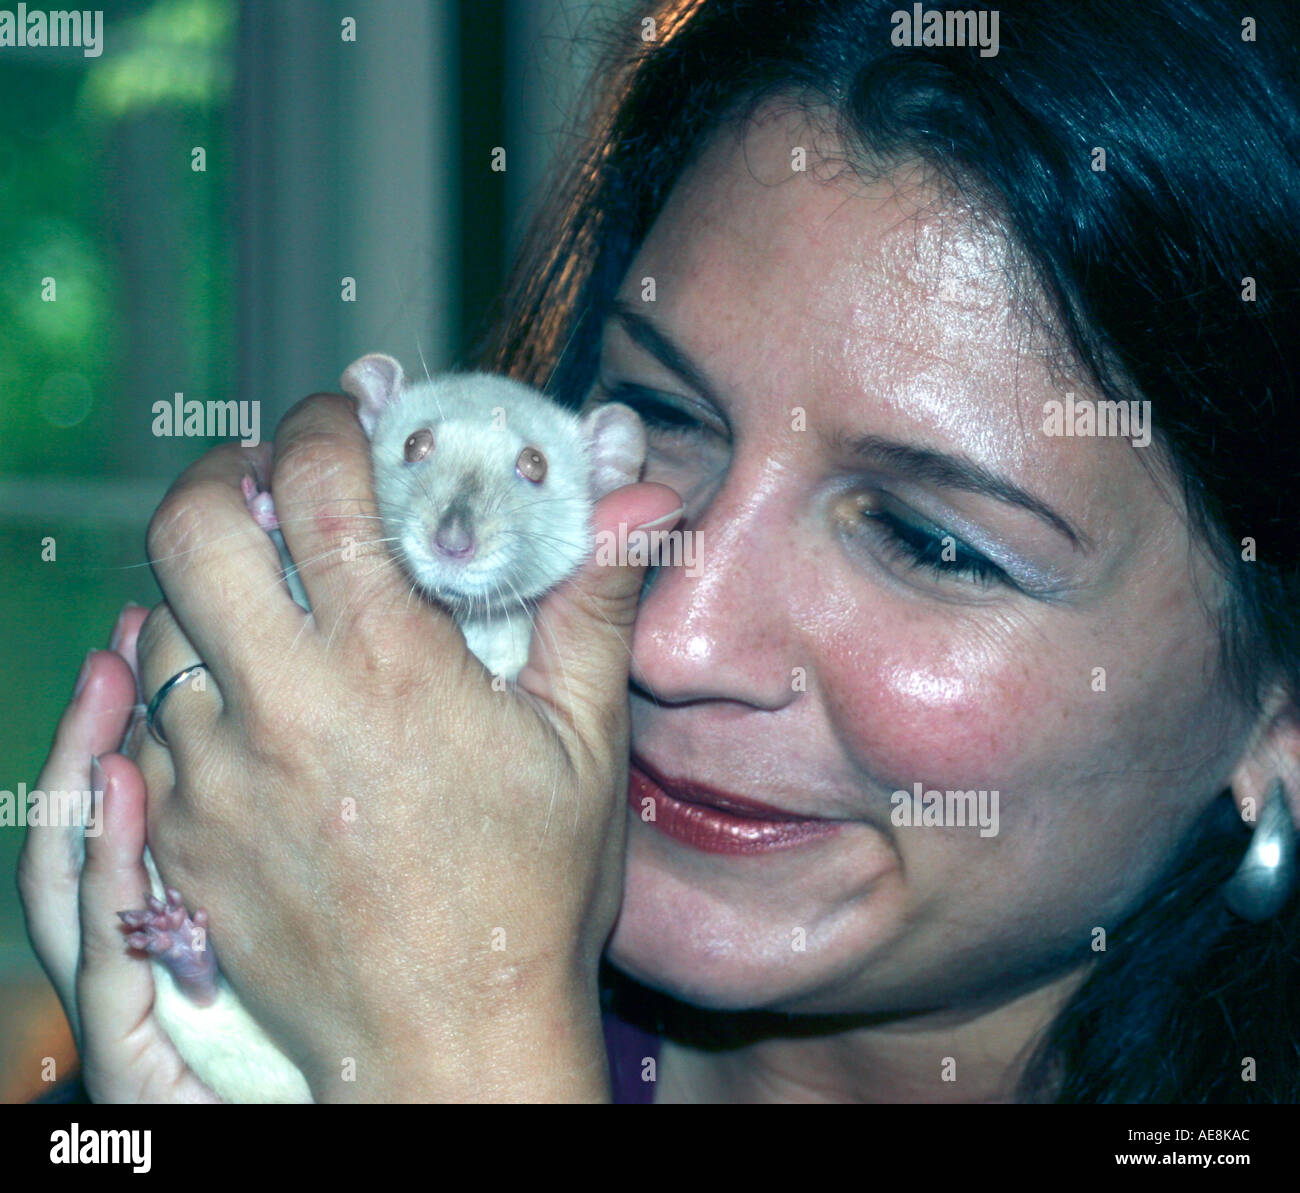 Pretty lady with pet white rat snuggled to face, domesticaed rattie, collectible, pink eyes, pink nose, unusual pet - Stock Image